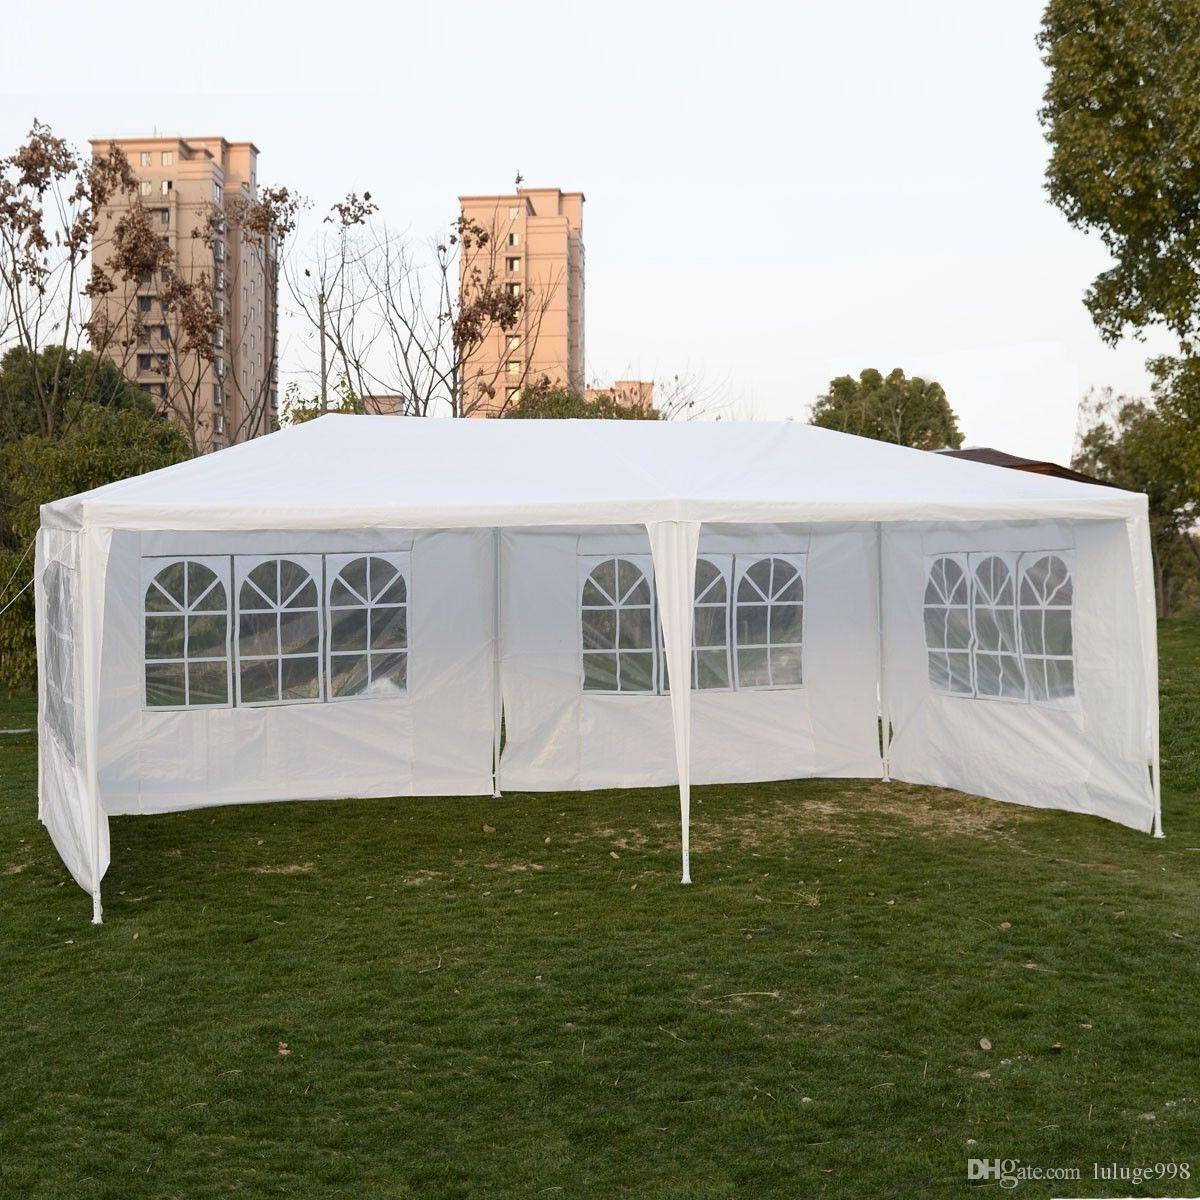 Открытый 10'x20'Canopy Party Party Party Tent Gazebo Pavilion Cater События 4 боковины